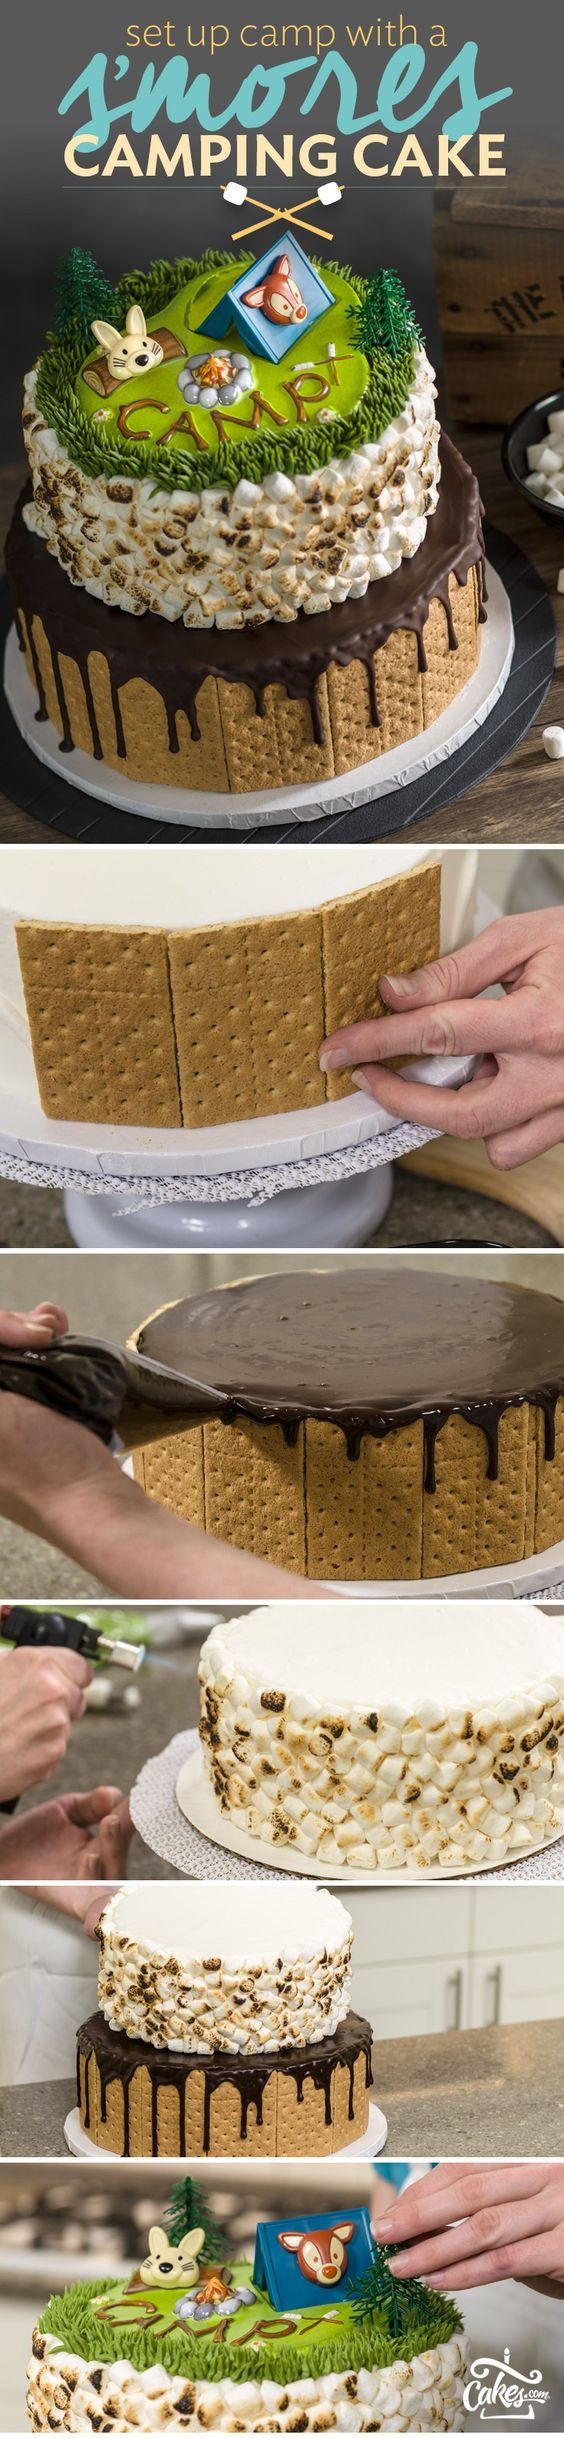 Learn how to make a S'mores cake with camping details and toasted marshmallows. Click for full cake decorating tutorial.